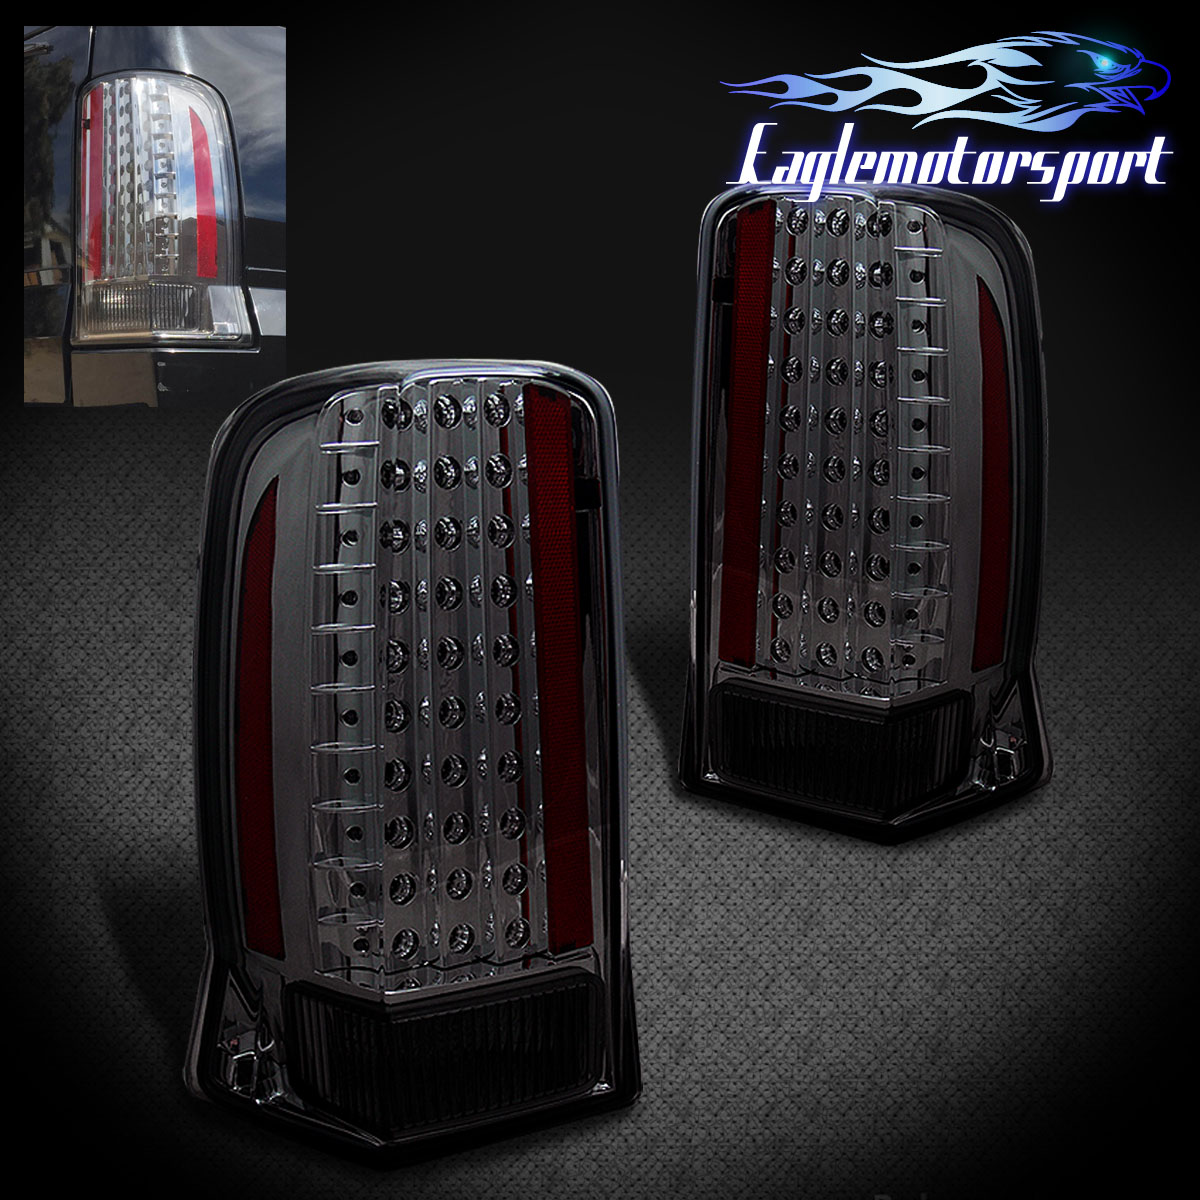 2003 2004 2005 2006 cadillac escalade red rear tail lights pair ebay. Black Bedroom Furniture Sets. Home Design Ideas